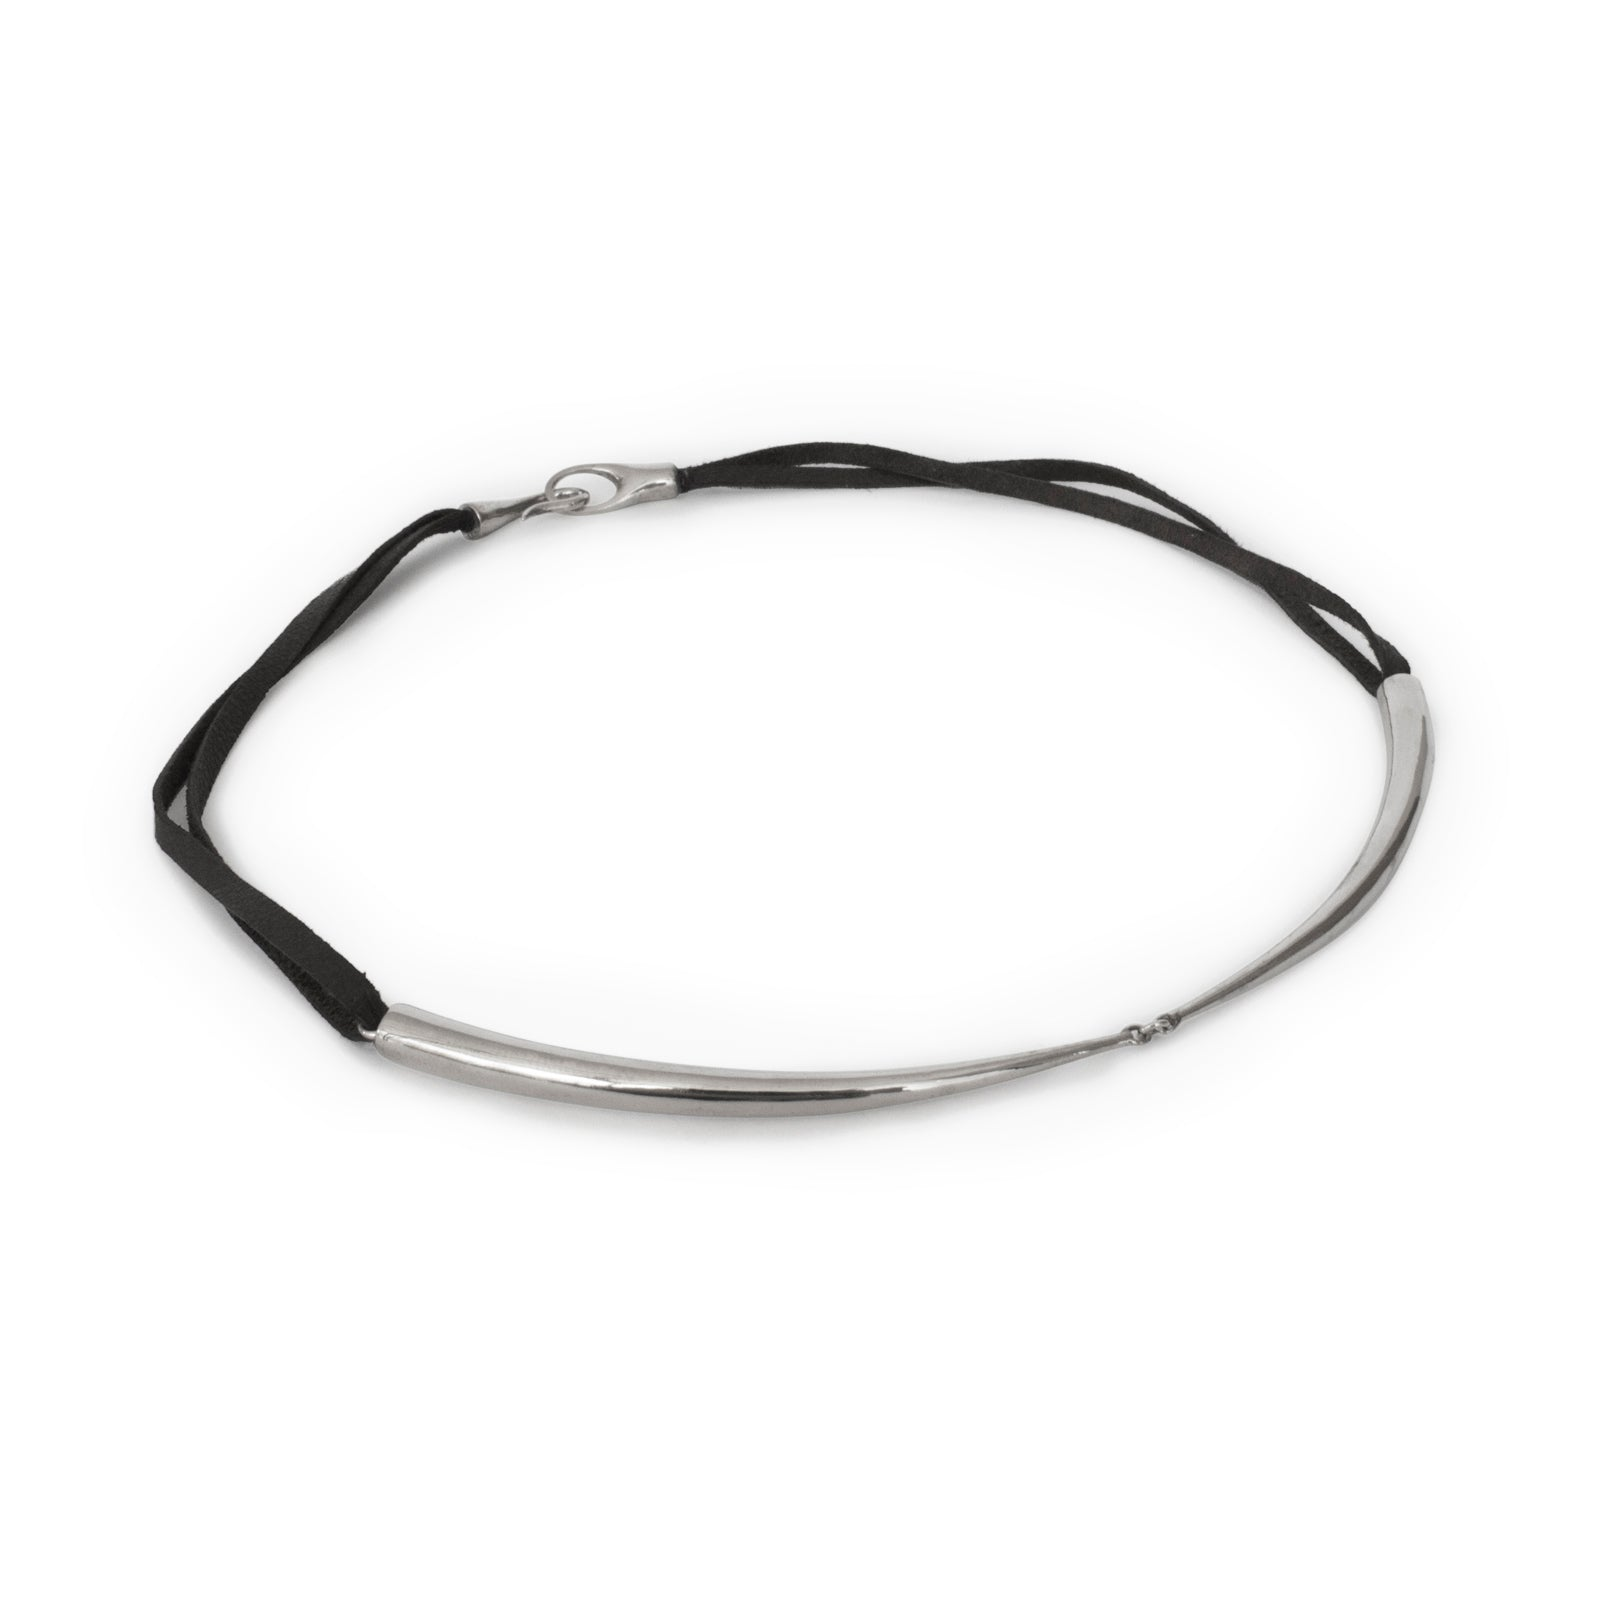 sterling silver plated in black rhodium arpent 1/2 choker